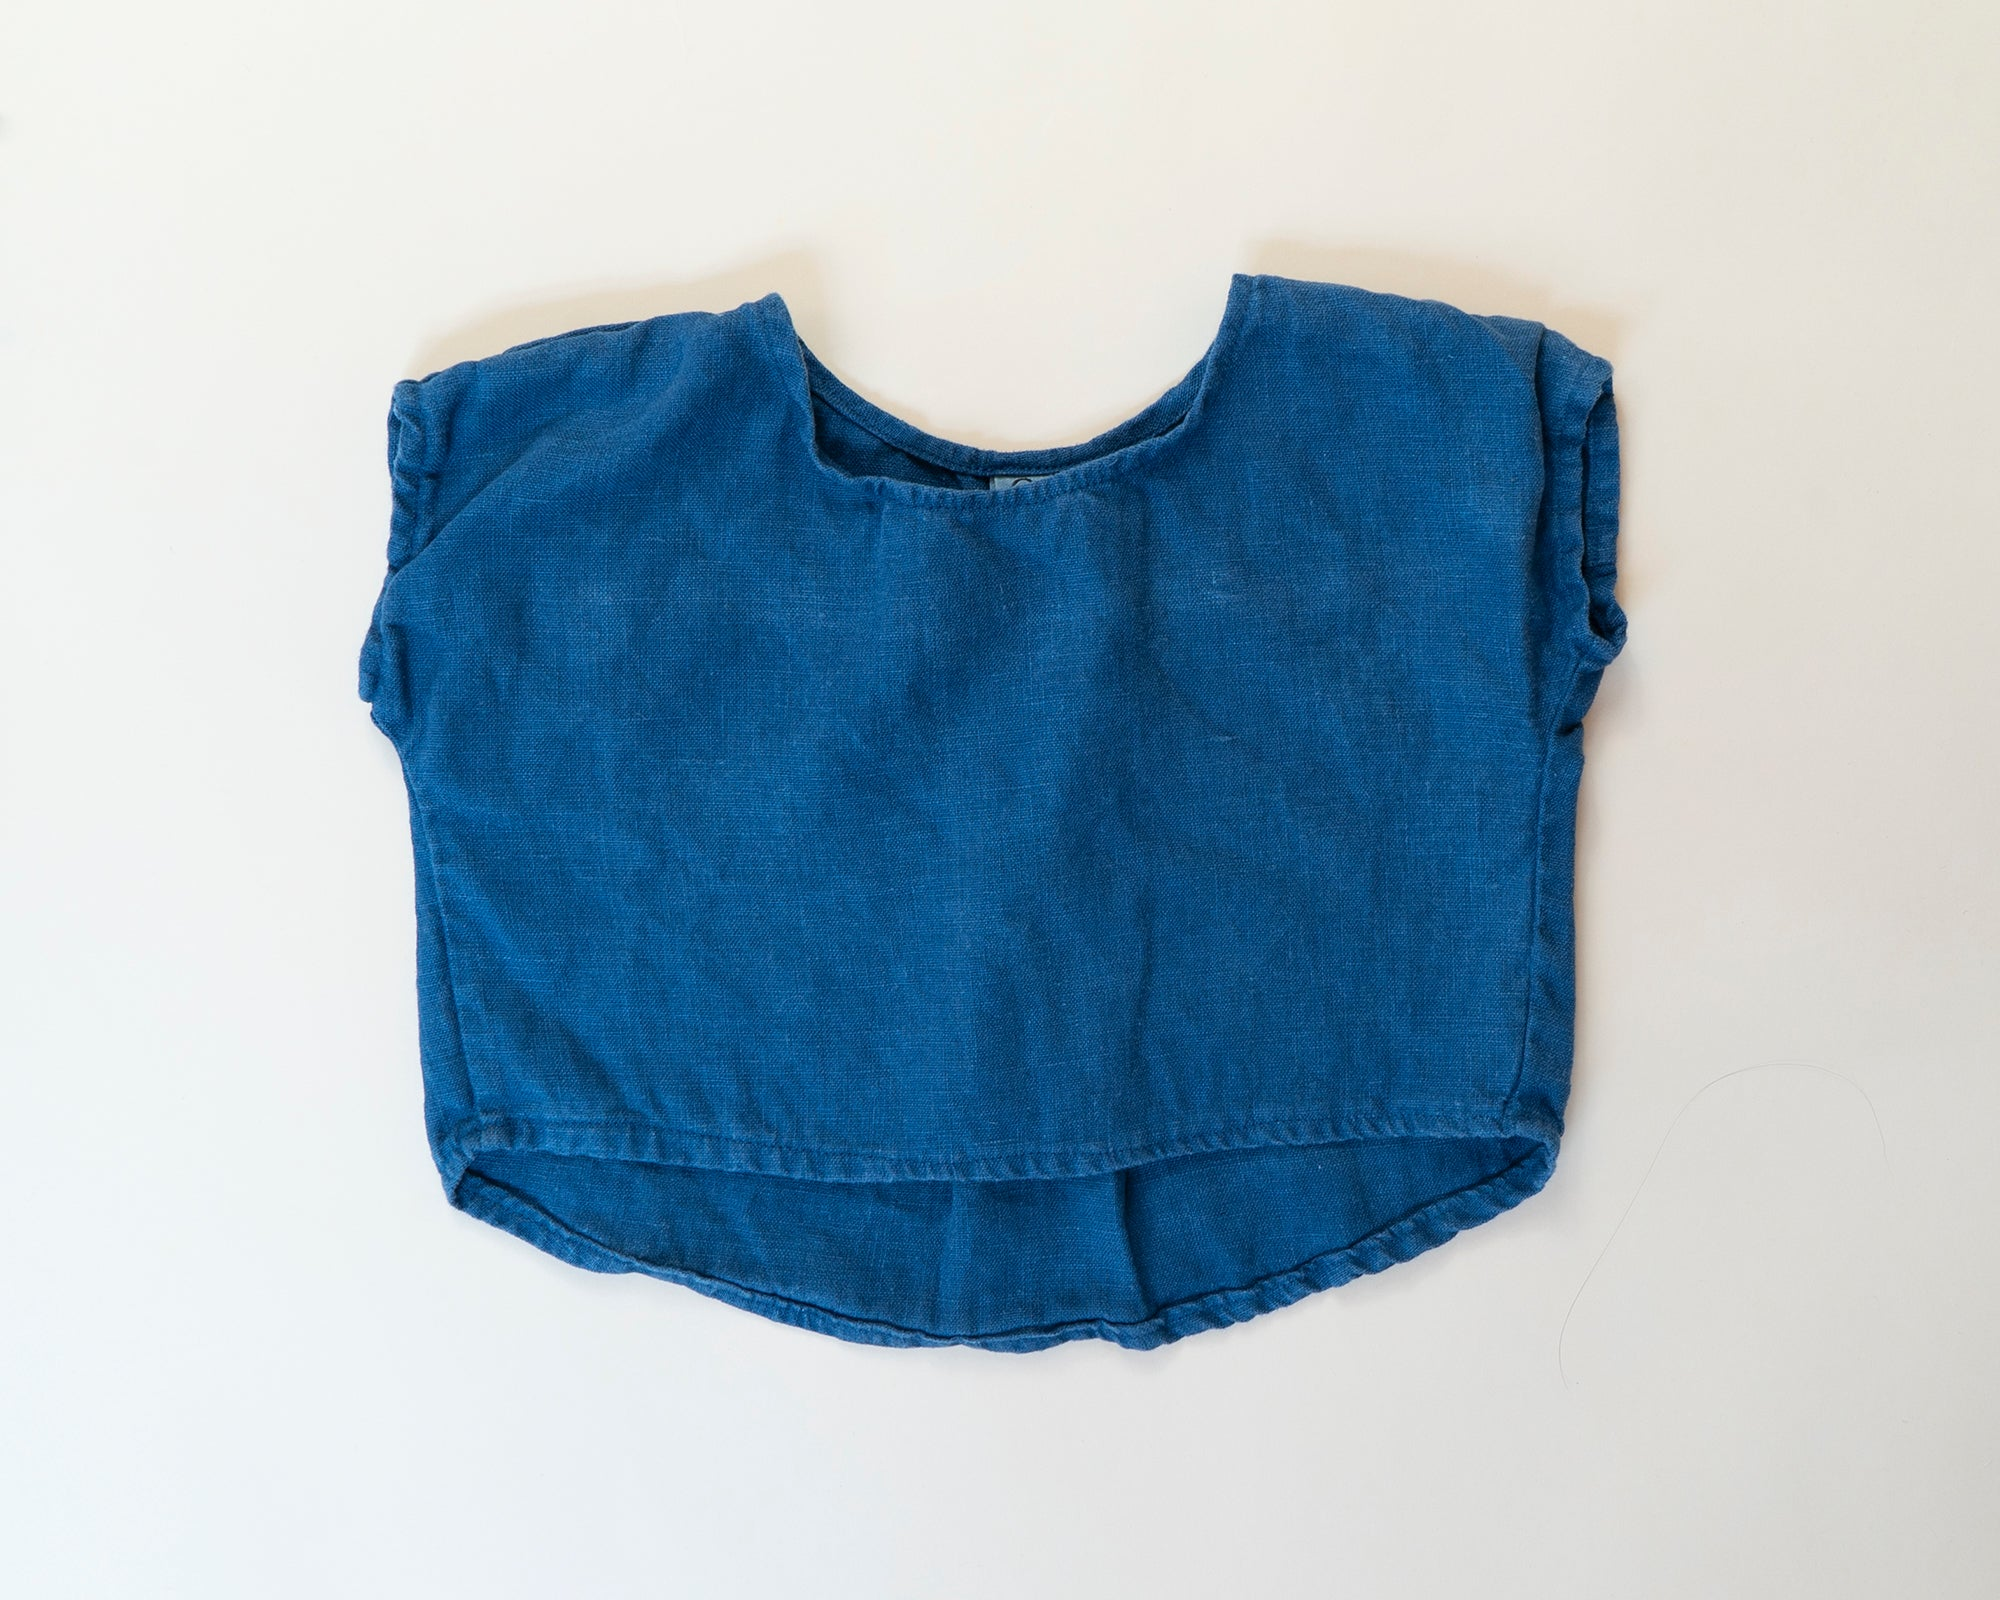 Breezy Top - Indigo Linen